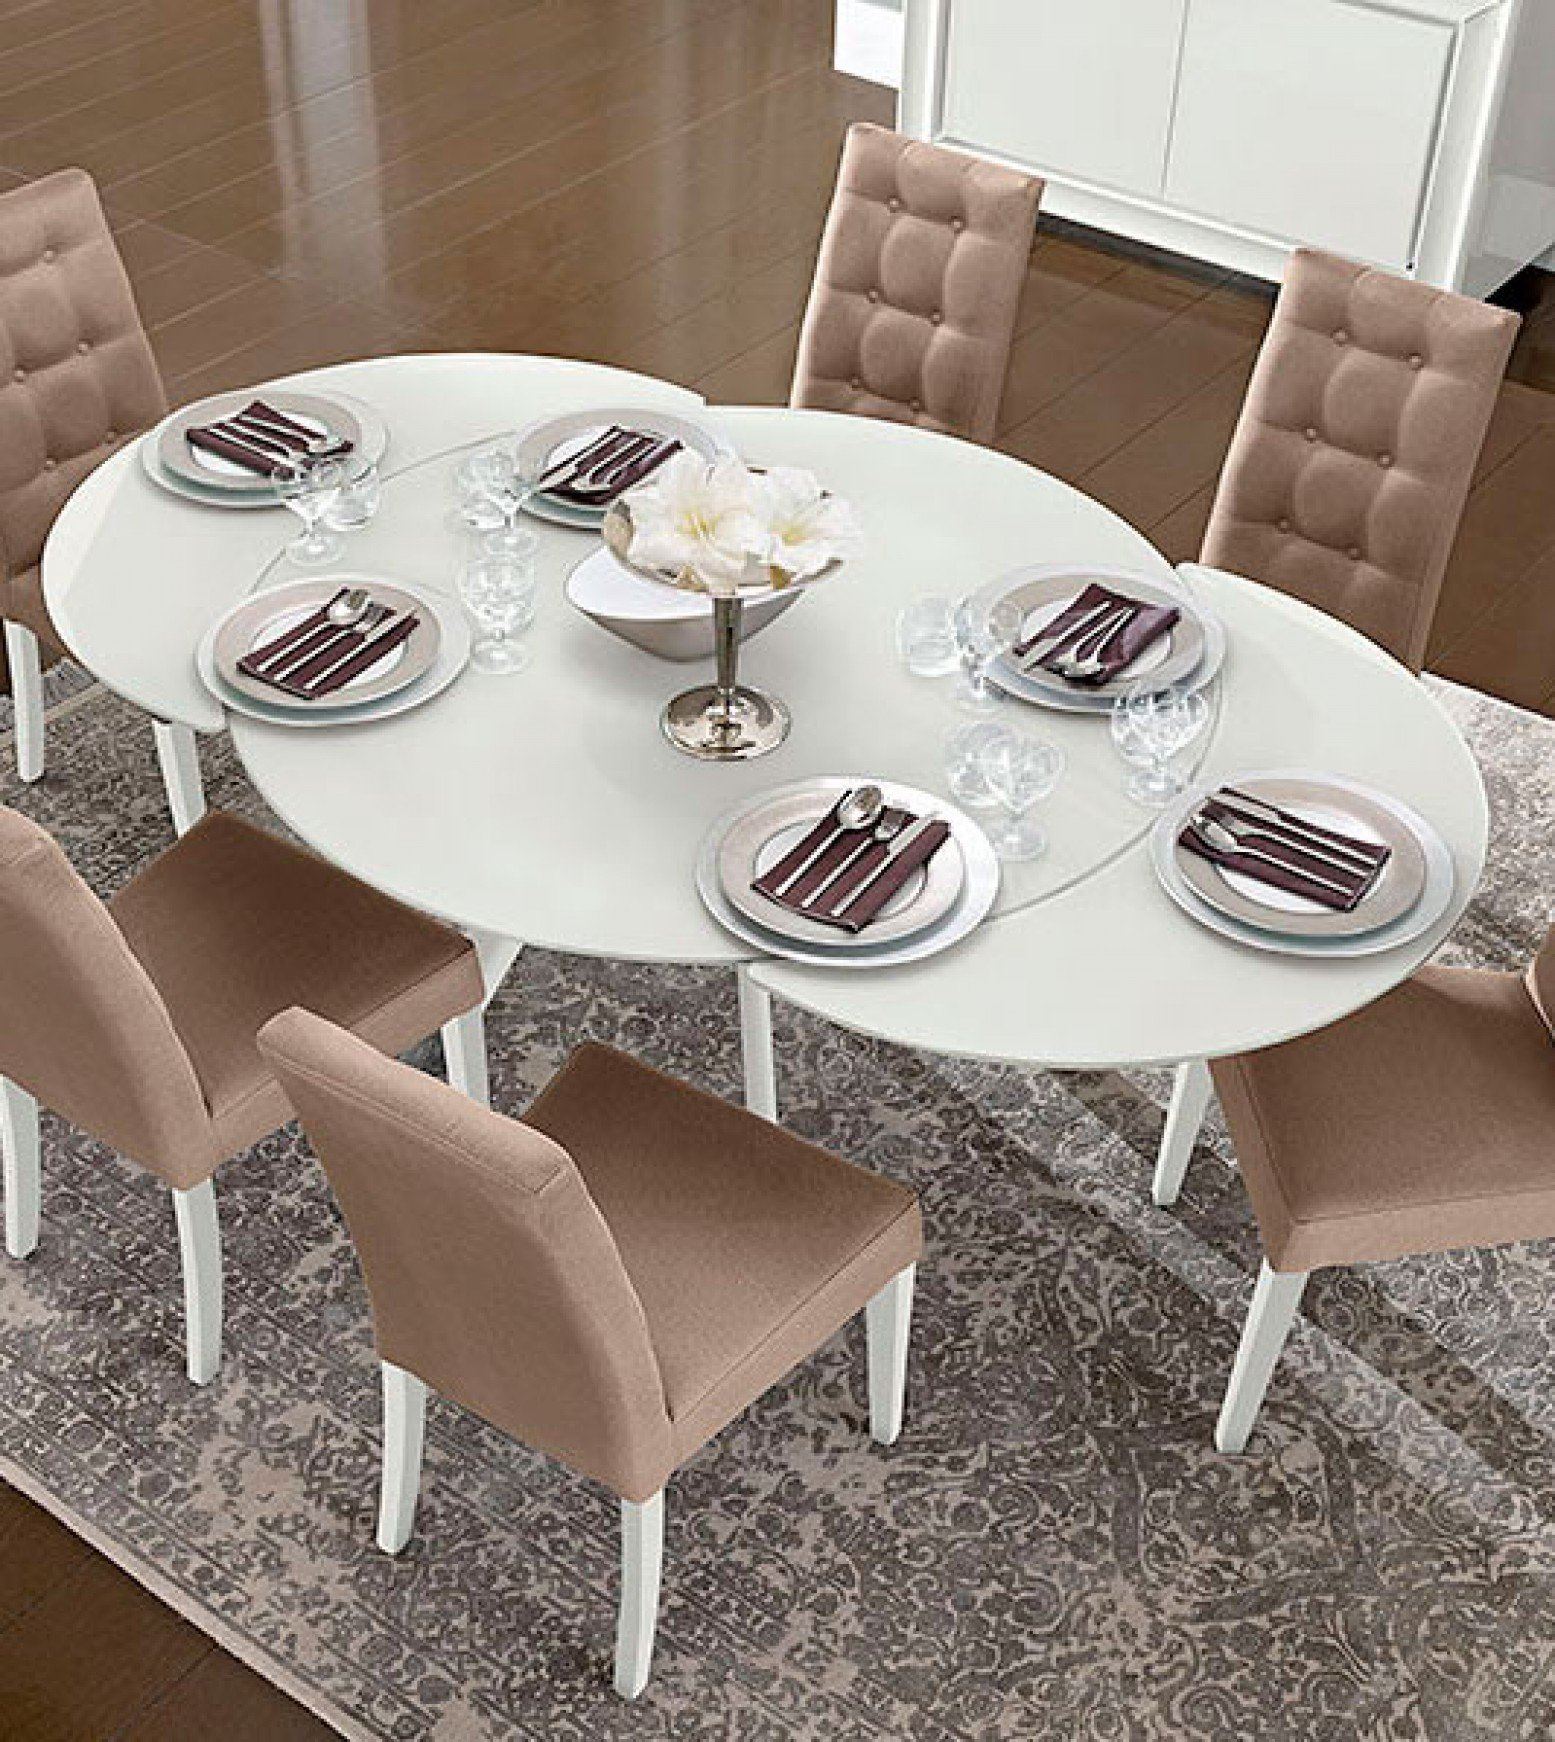 Dama Bianca Round Extendable Dining Table